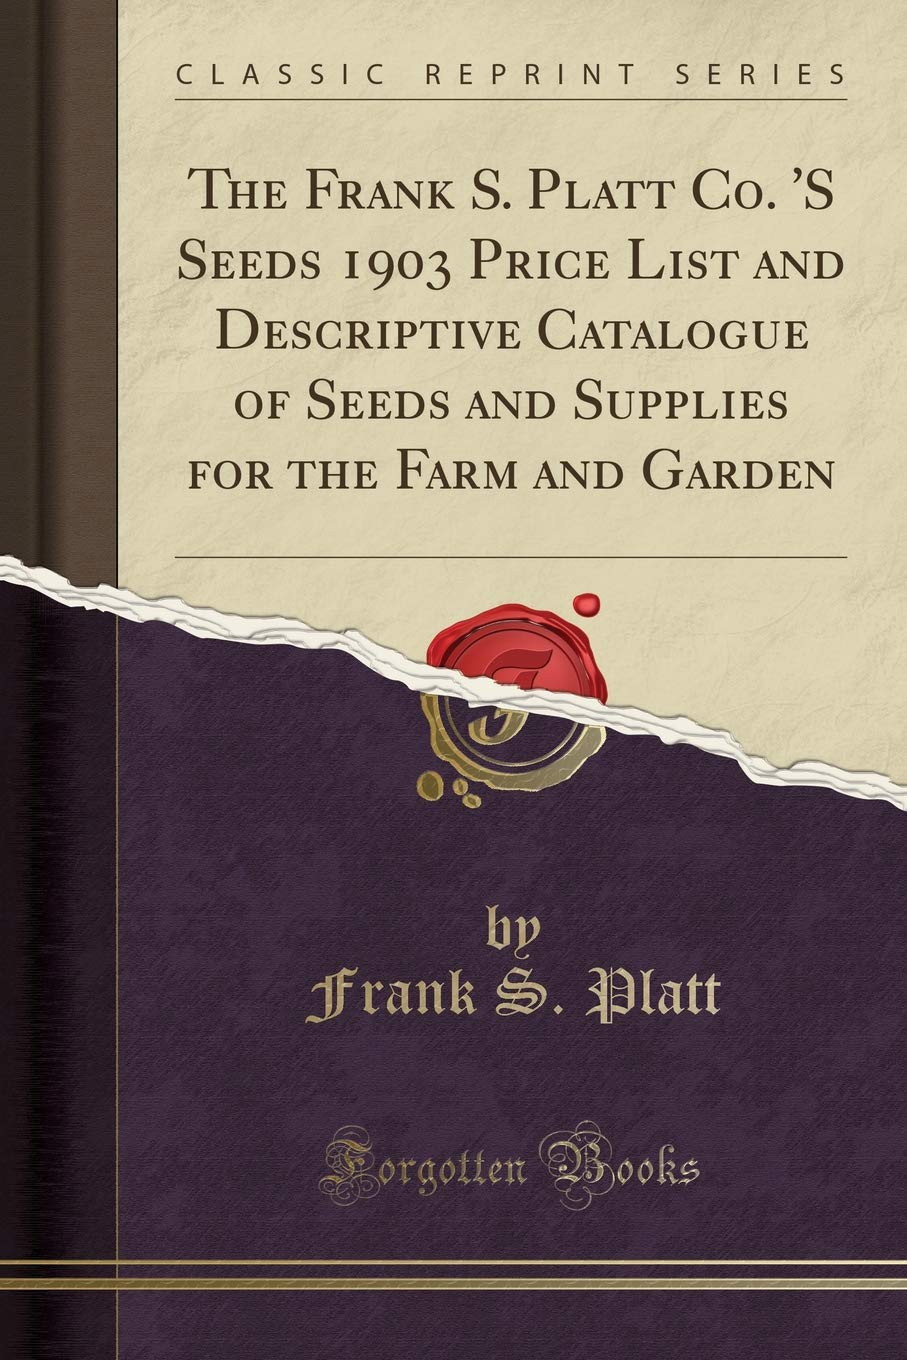 The Frank S. Platt Co. 'S Seeds 1903 Price List and Descriptive Catalogue of Seeds and Supplies for the Farm and Garden (Classic Reprint) pdf epub